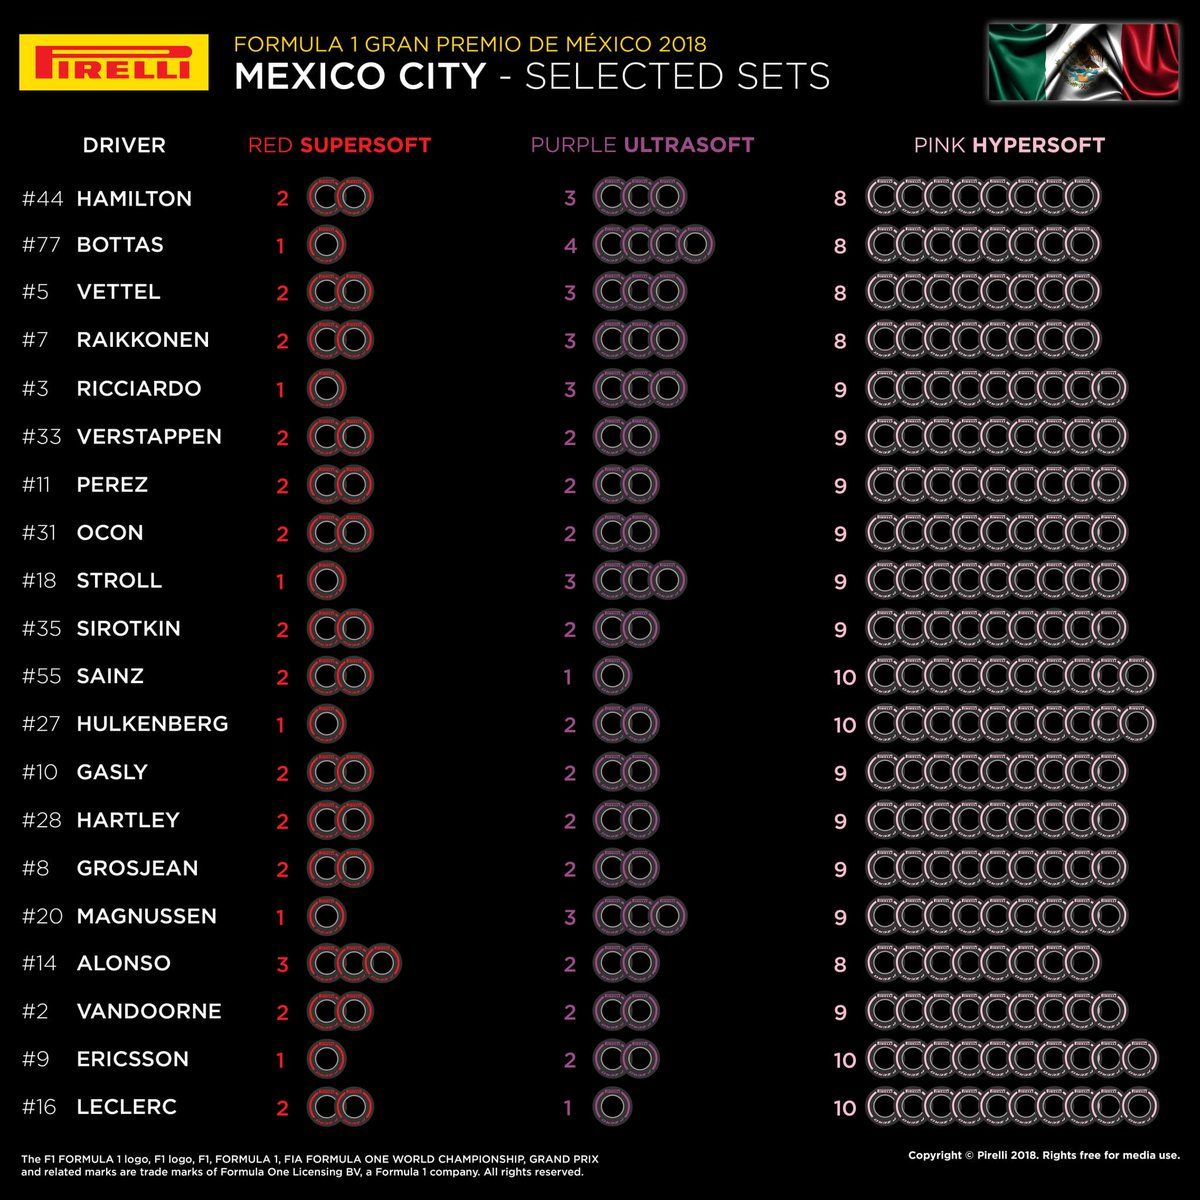 https://f1i.com/wp-content/uploads/2018/10/2018MexicoiGP-TyreSelection.jpg